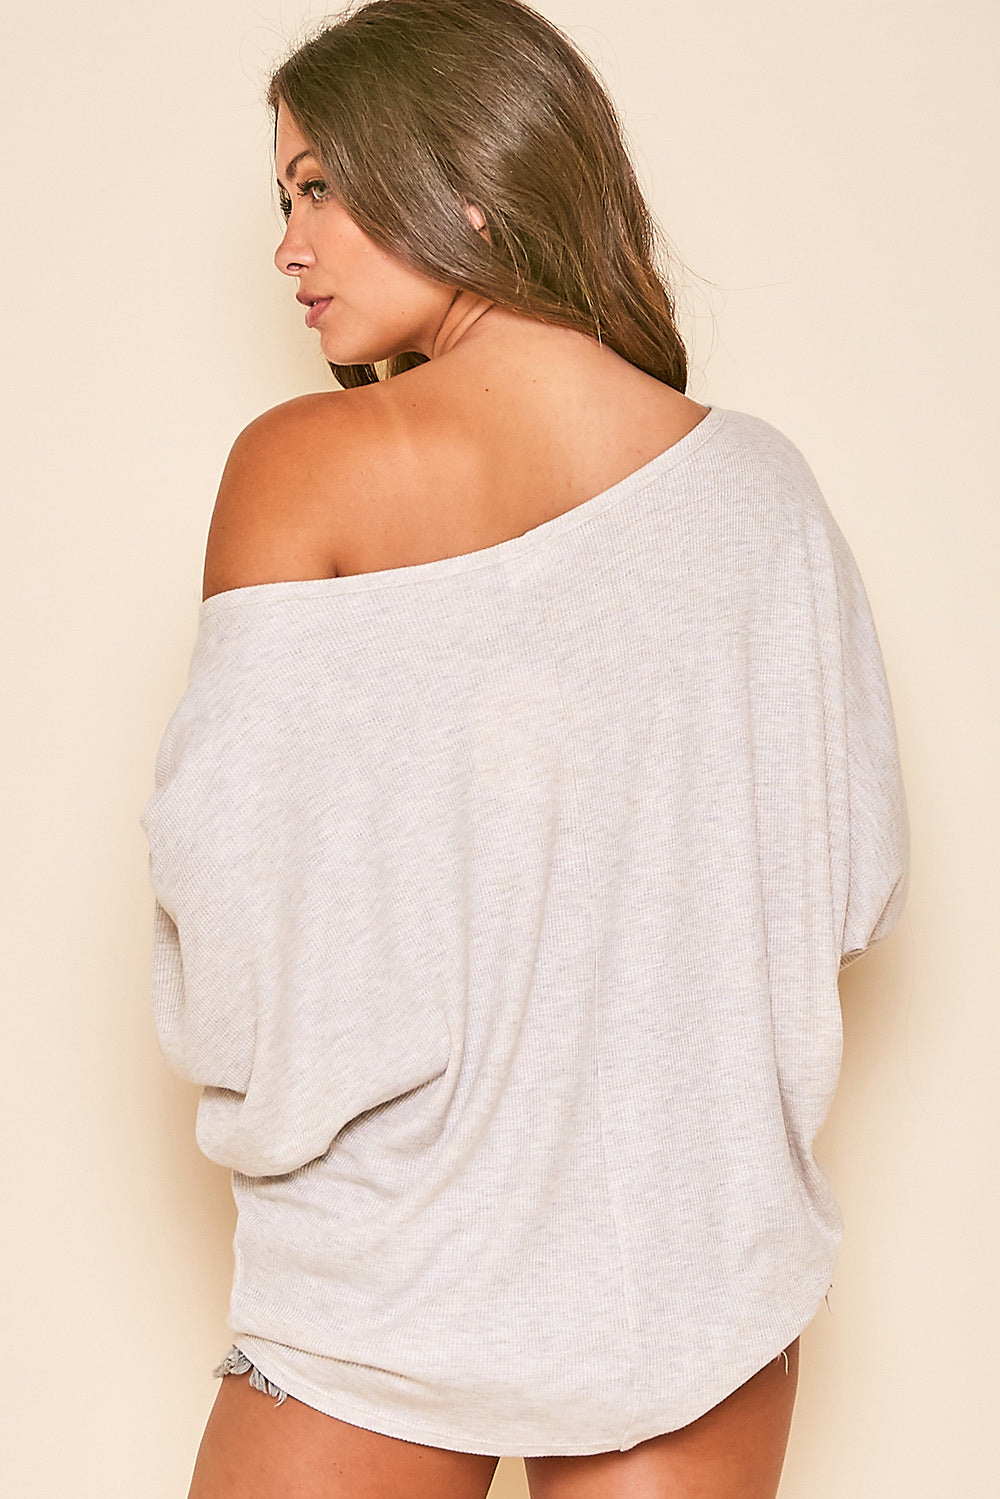 Oatmeal Batwing Top